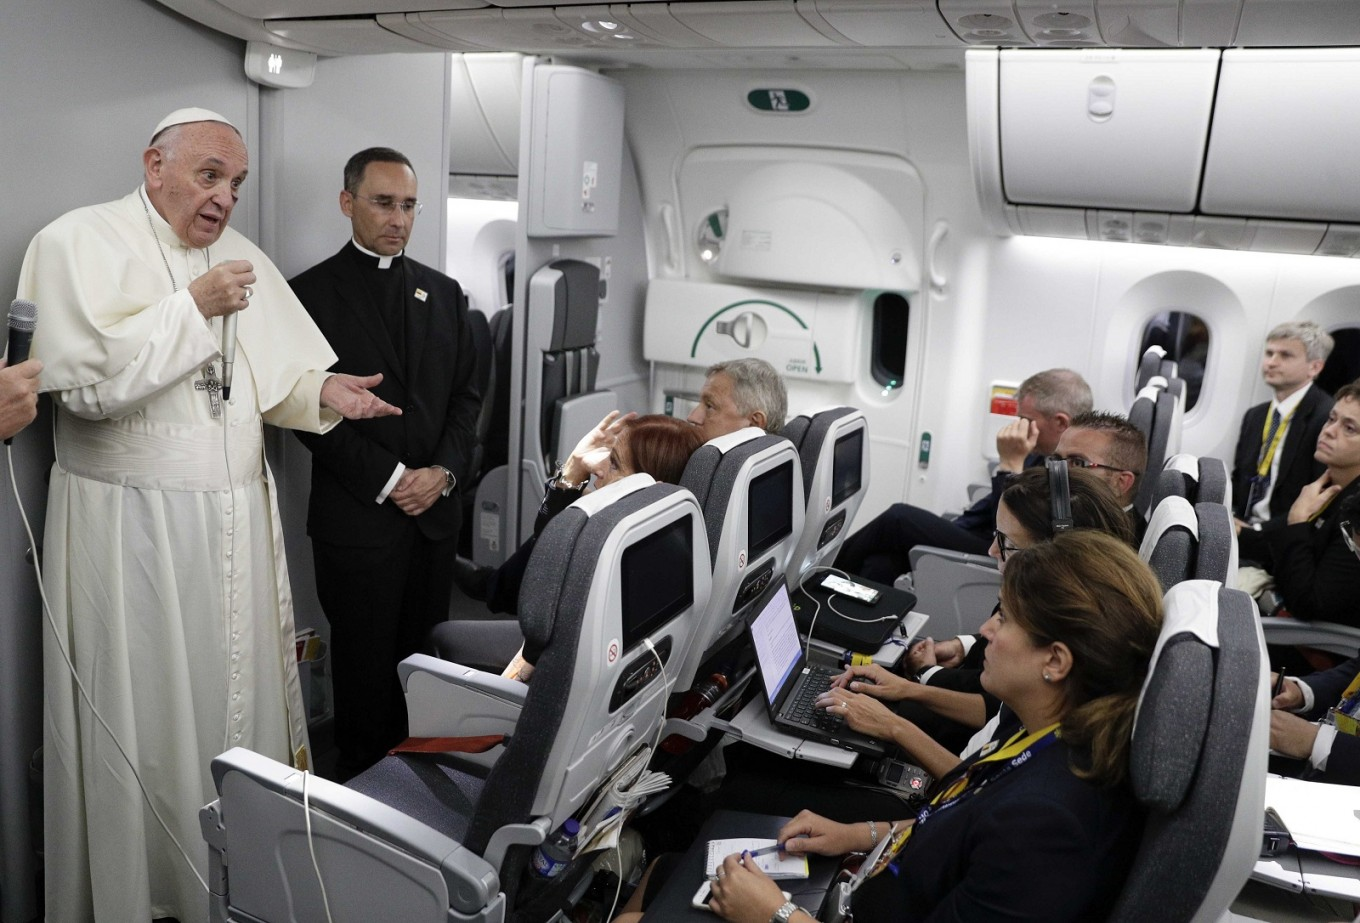 Pope slams climate change deniers as 'stupid'